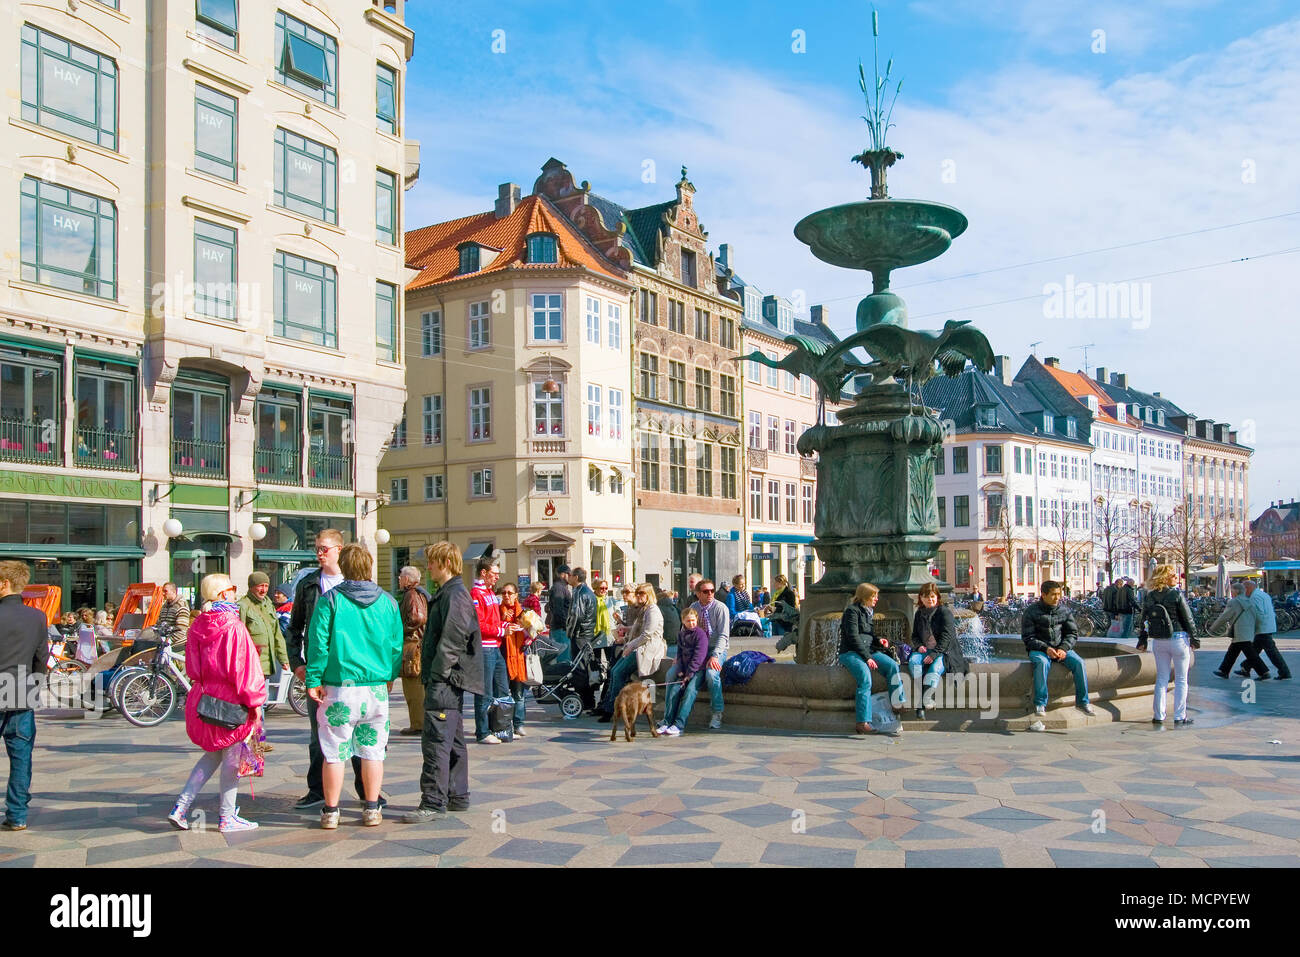 COPENHAGEN, DENMARK - APRIL 13, 2010: Many people near fountain Stork on Amagertorv Square. Carfree zone Stroget - Stock Image